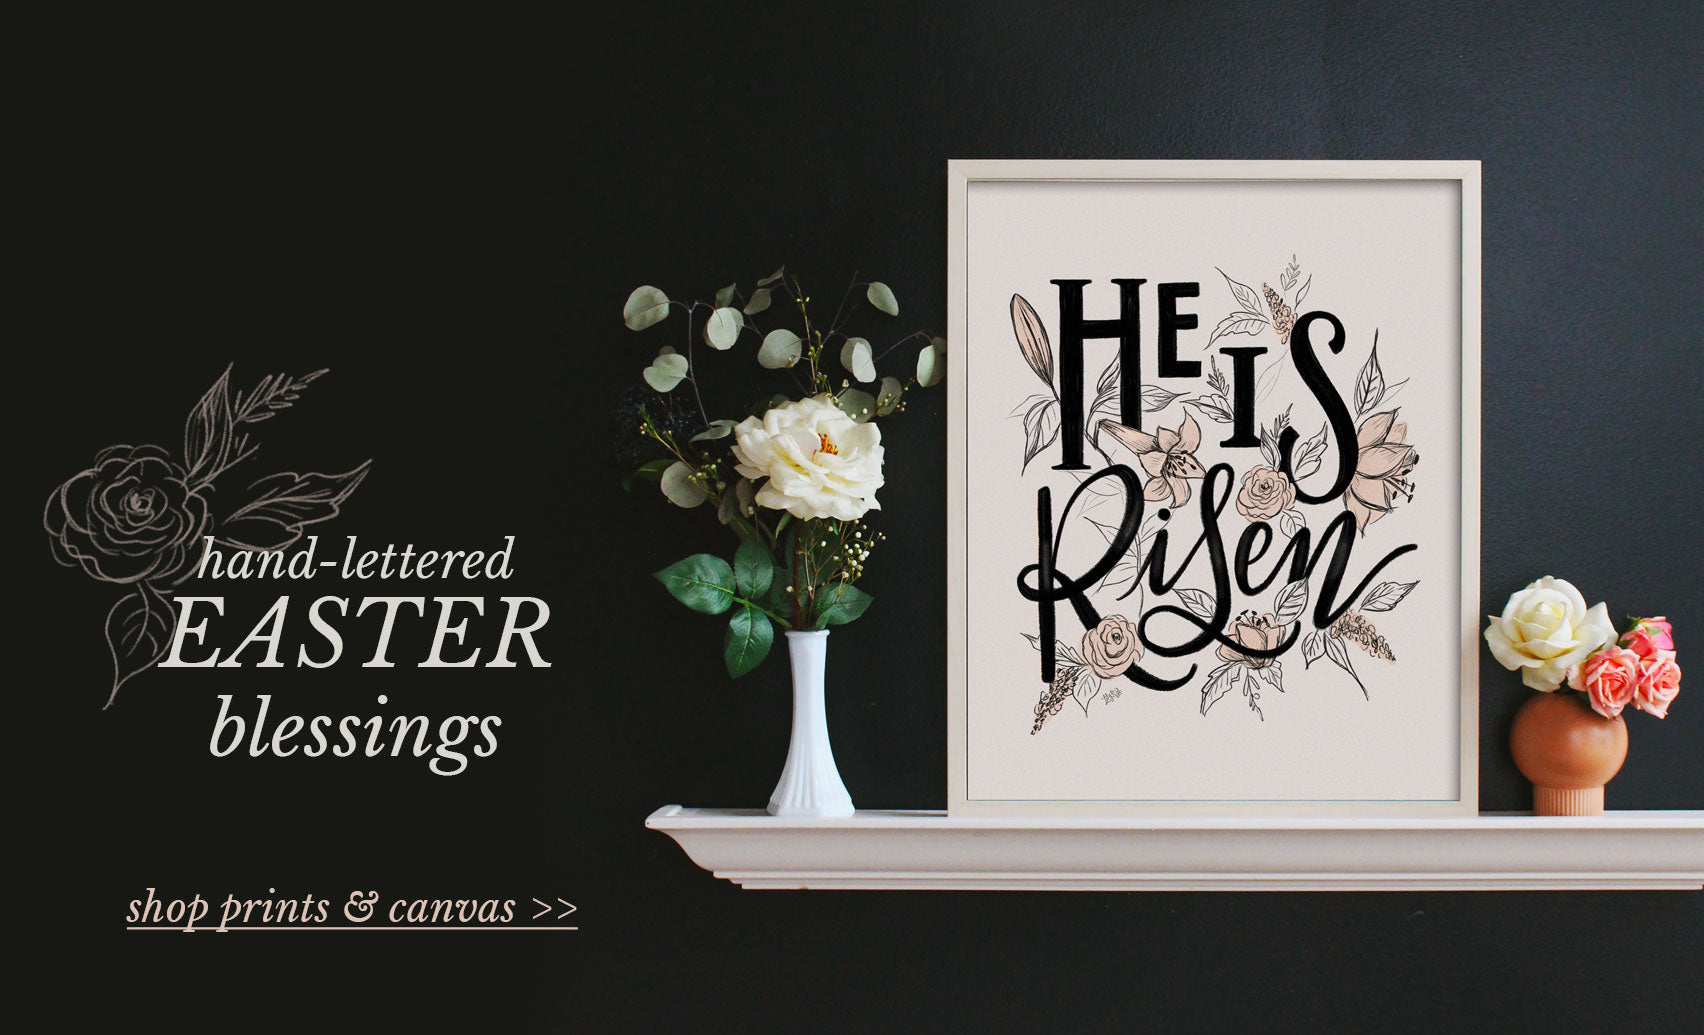 Hand-lettered Easter Wall Art Print